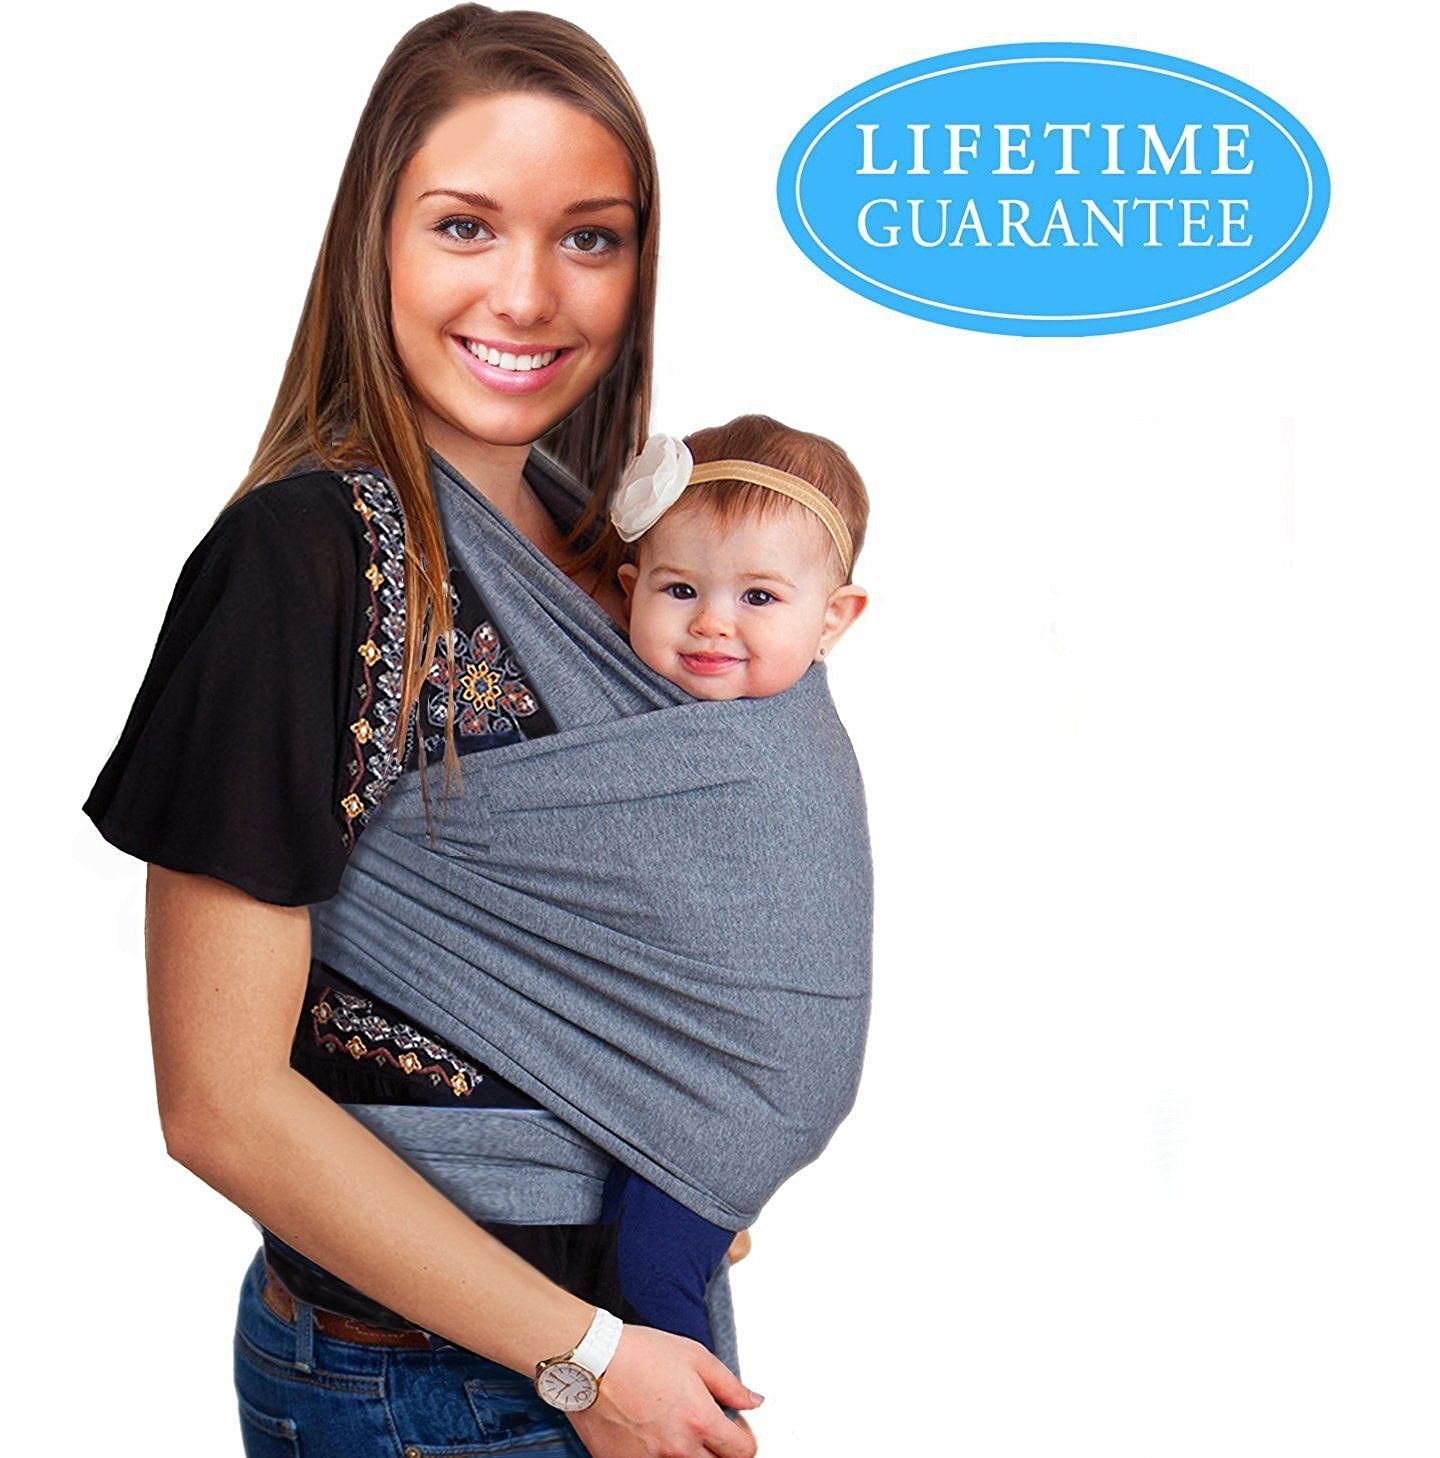 cc47bcd9e26 4-in-1 Baby Wrap Carrier